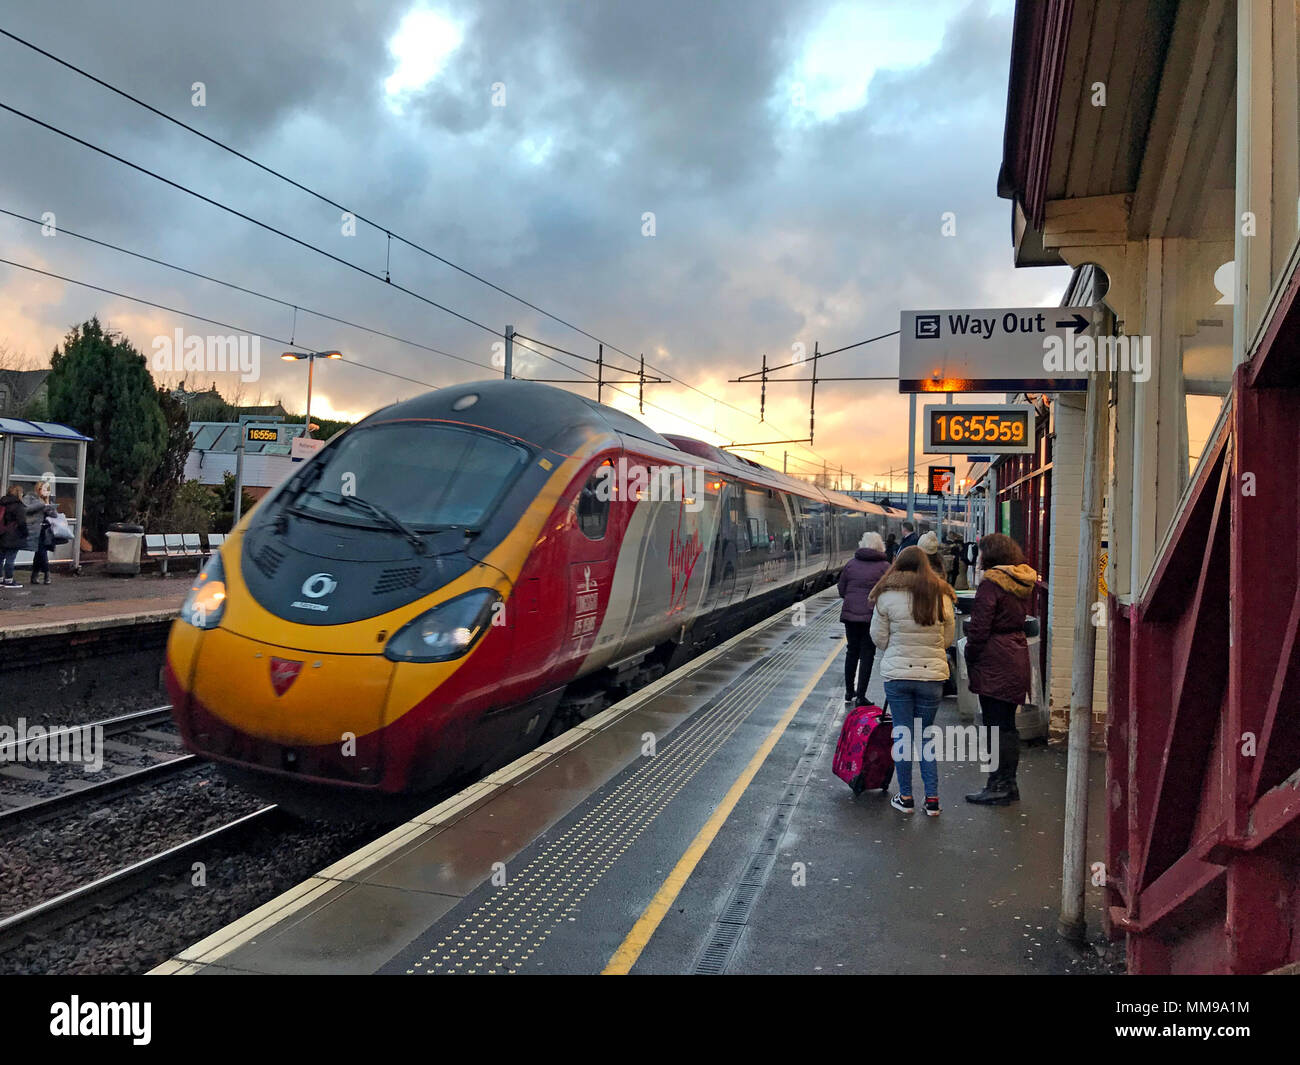 Virgin Pendolino arrives at Motherwell Railway Station, North Lanarkshire, Scotland at dusk, UK - Stock Image